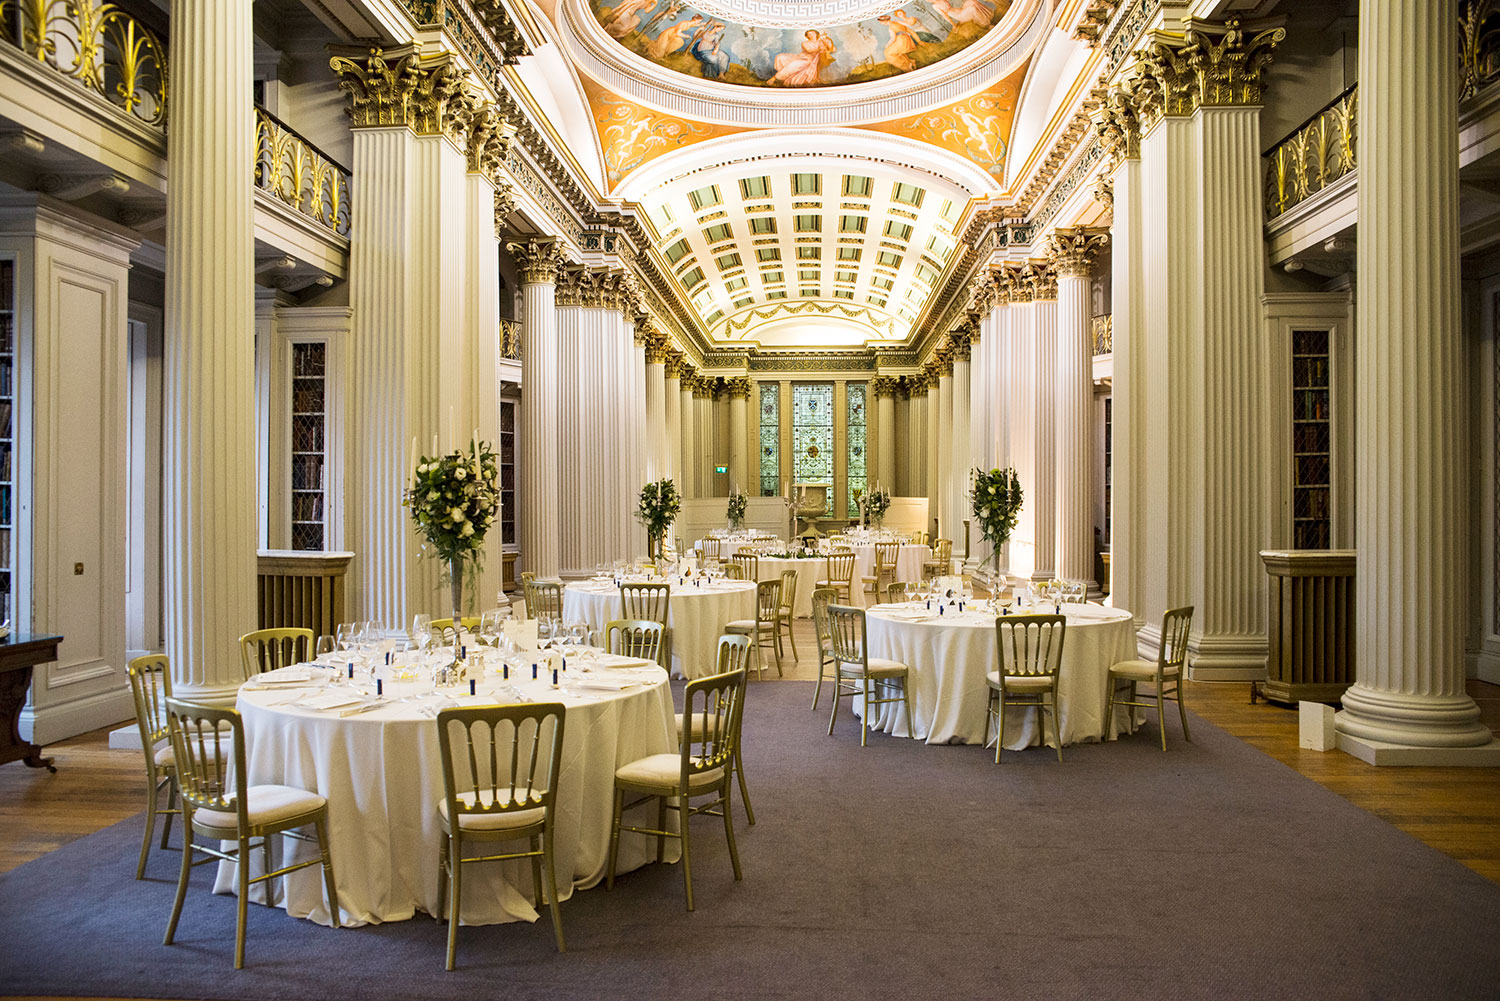 The room upstairs - you will remember this for the rest of your live. Breathtakingly beautiful, Signet Library Wedding Venue Edinburgh